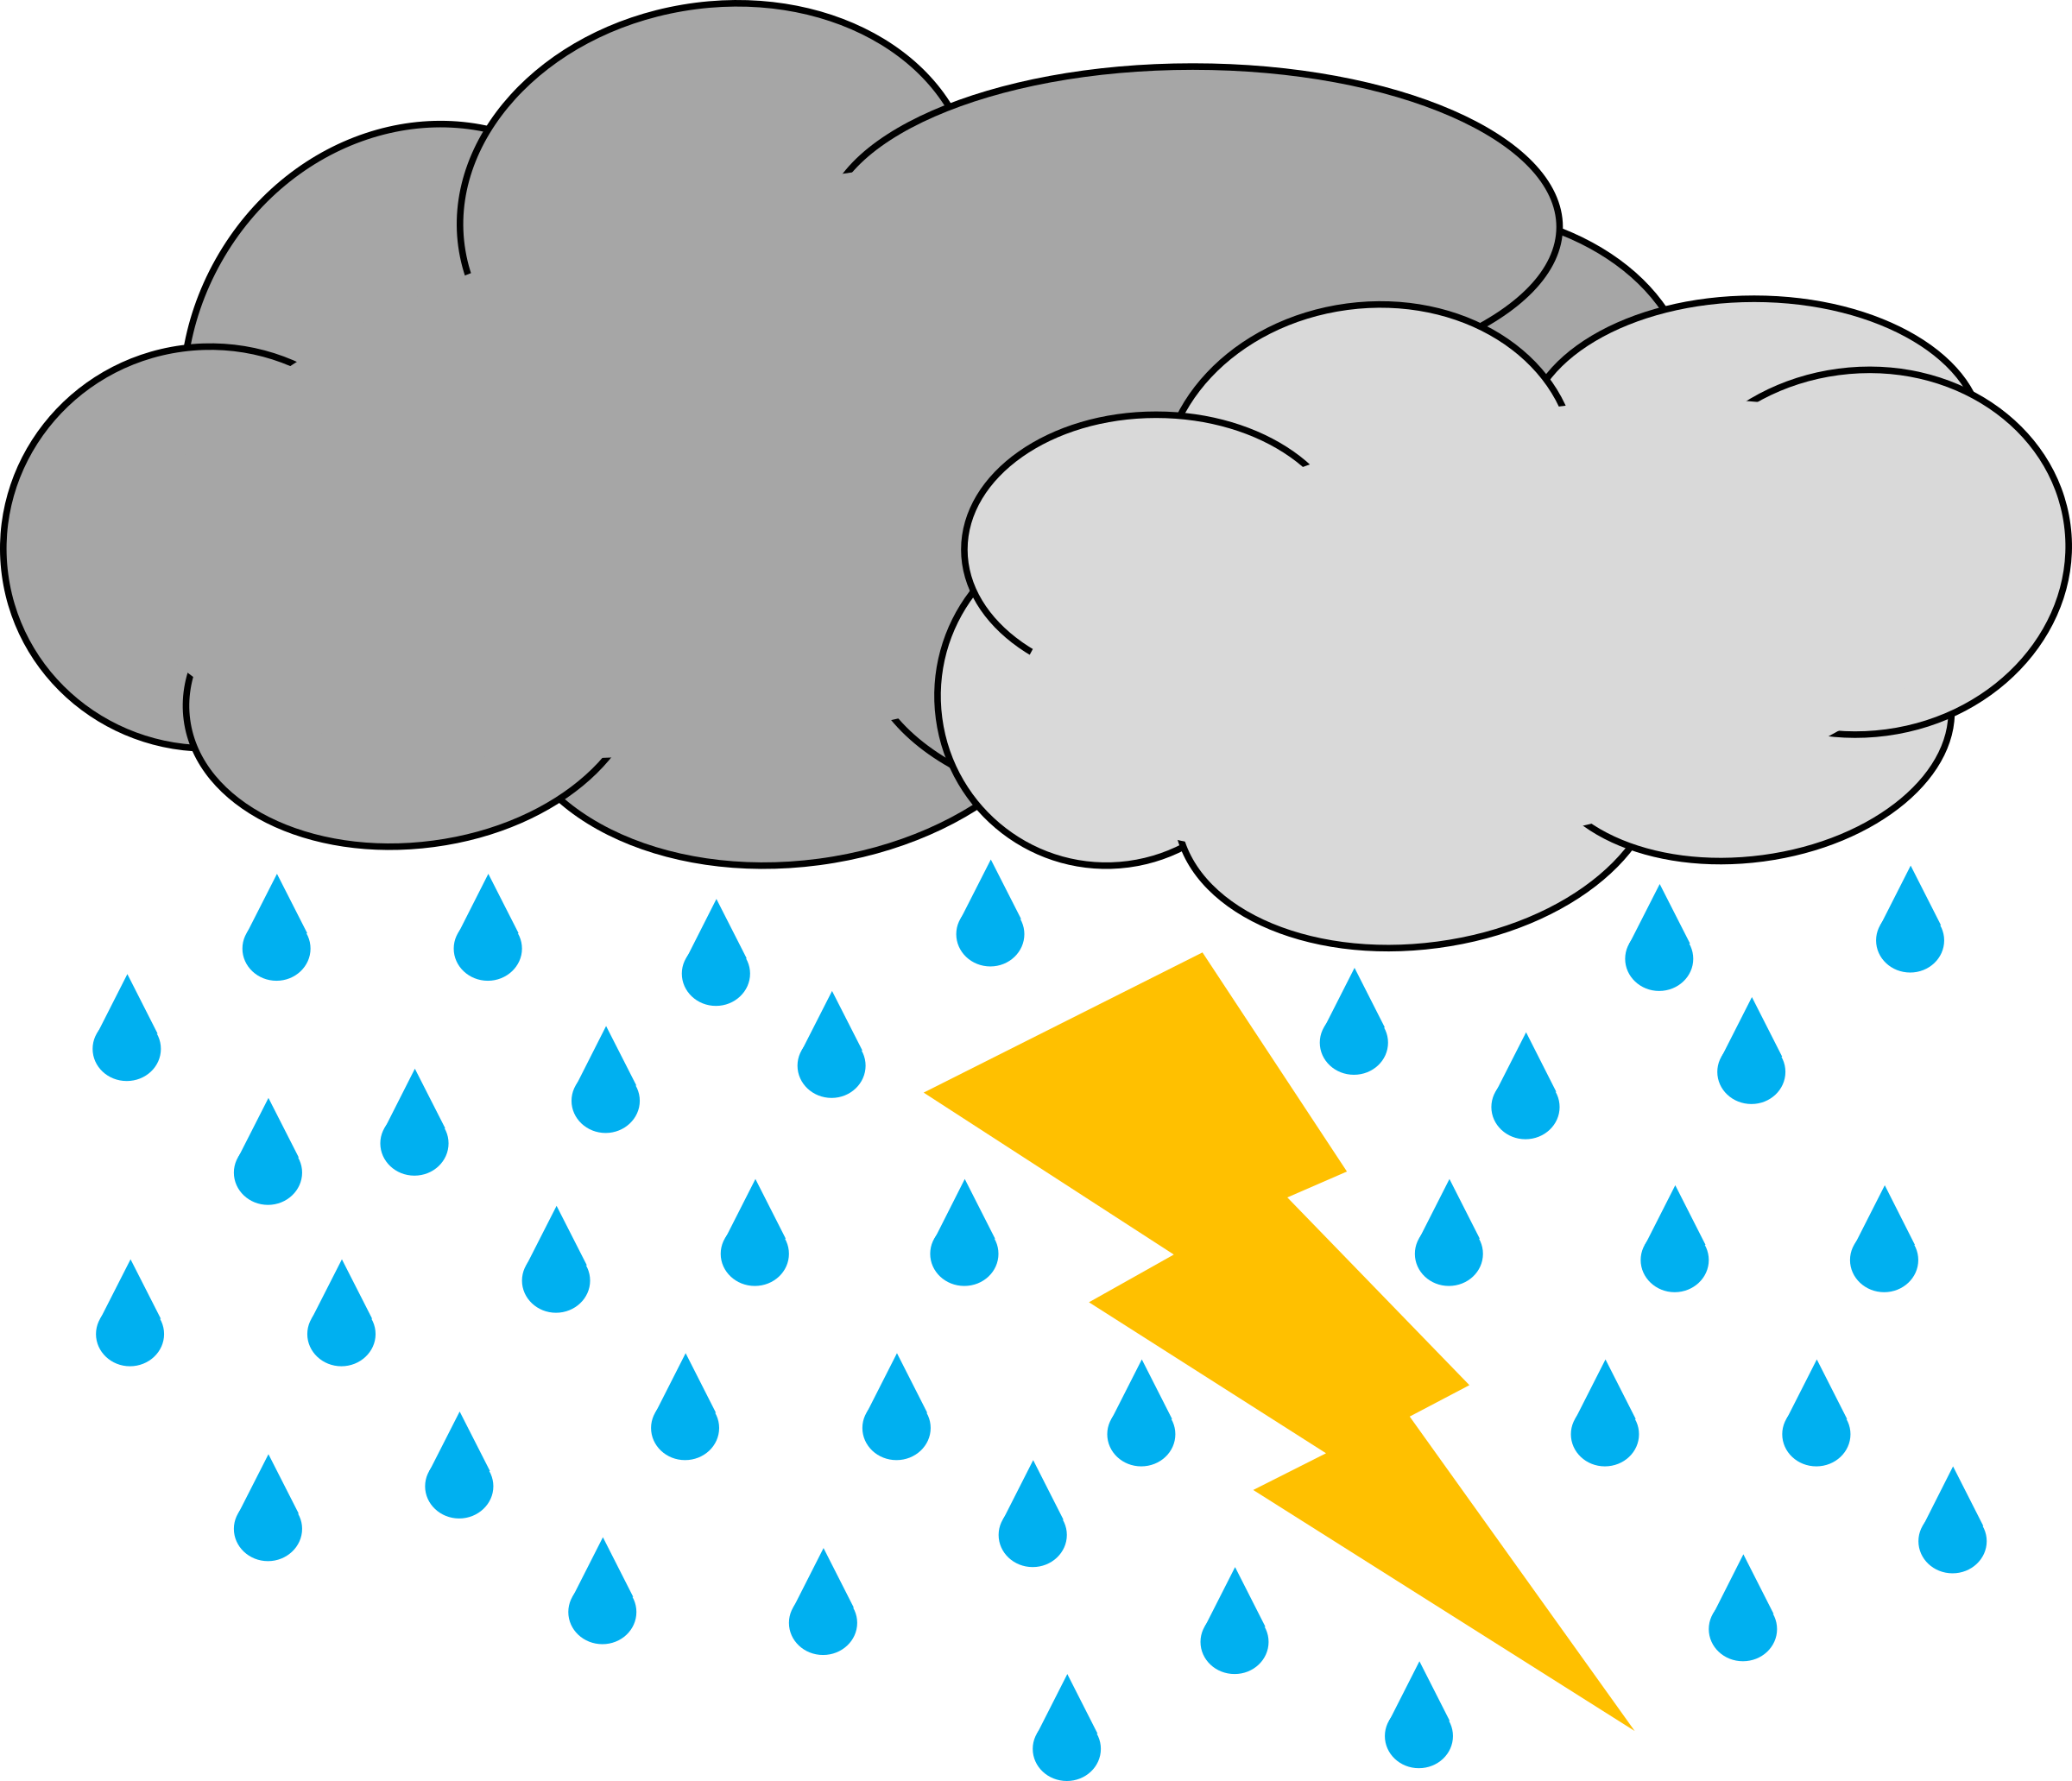 Thunderstorm big image png. Lightning clipart stormy